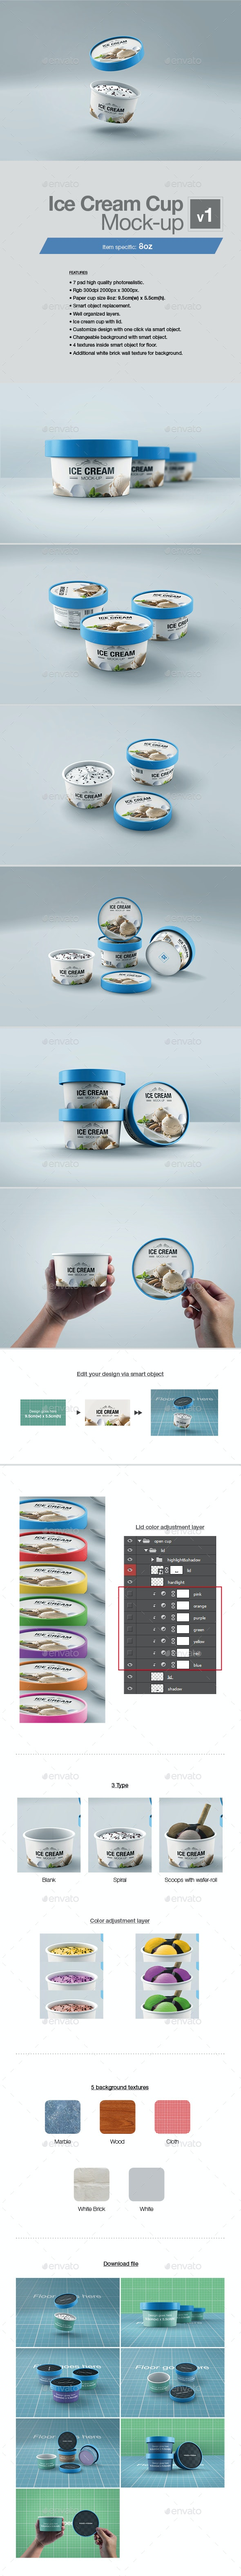 Ice Cream Cup Mock-up v1 - Packaging Product Mock-Ups